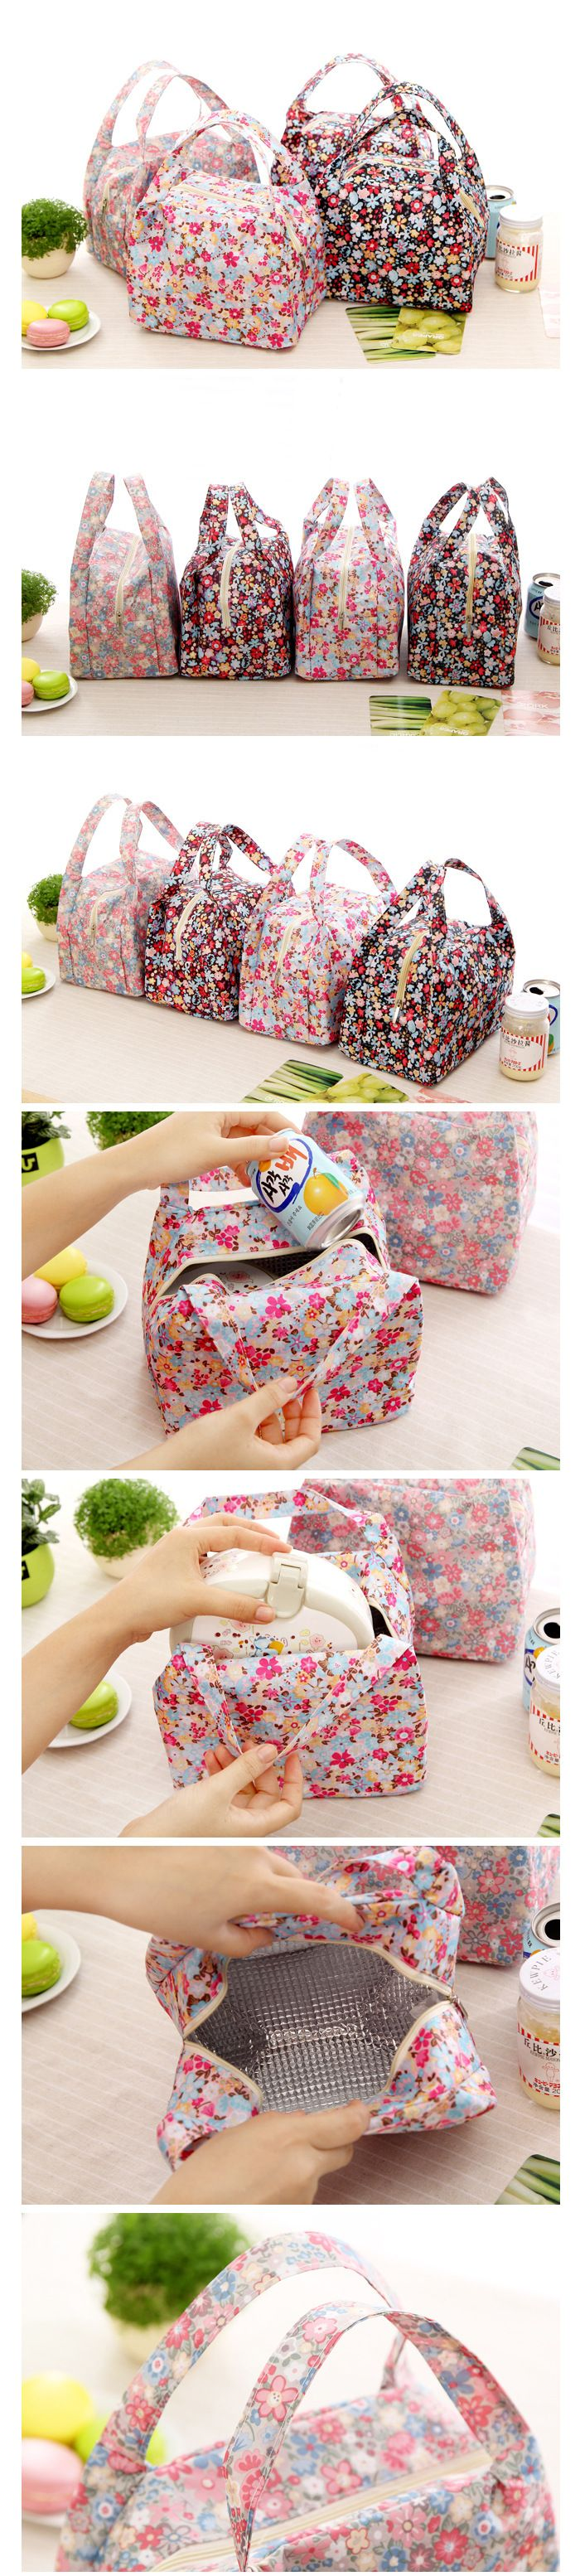 floral lunch bags